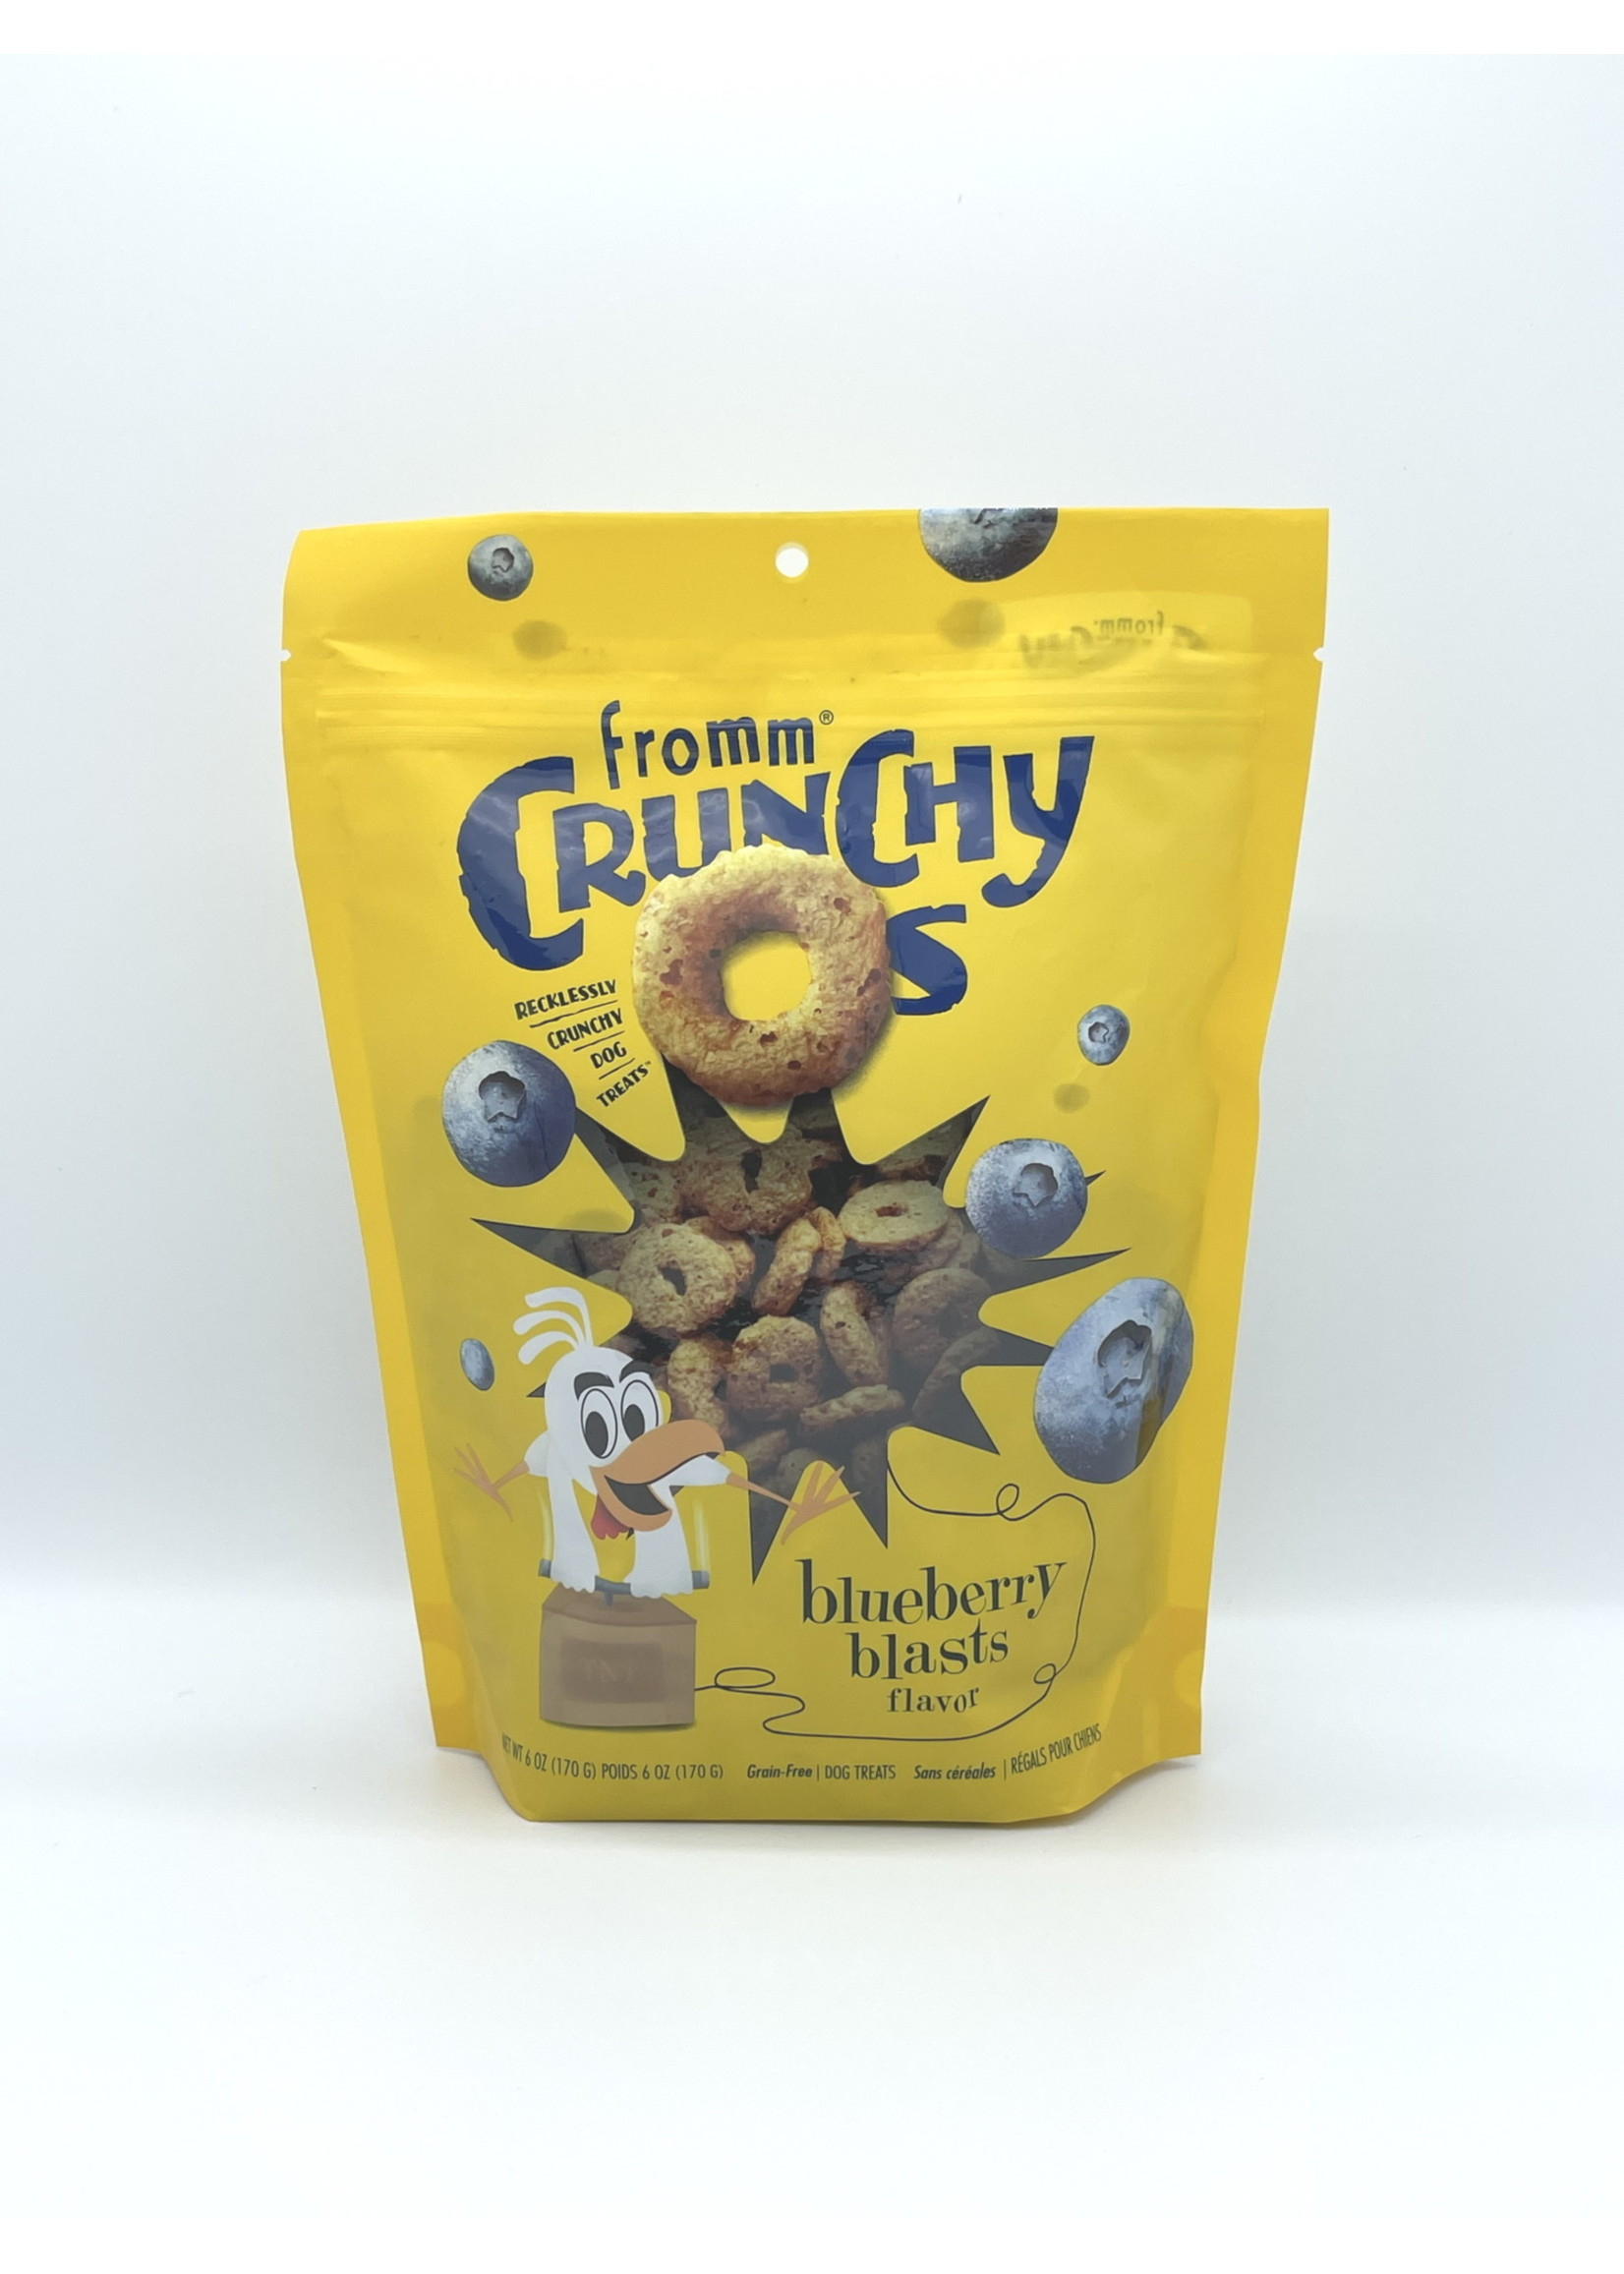 Fromm Fromm Crunch O's Blueberry Blast, 6oz Bag